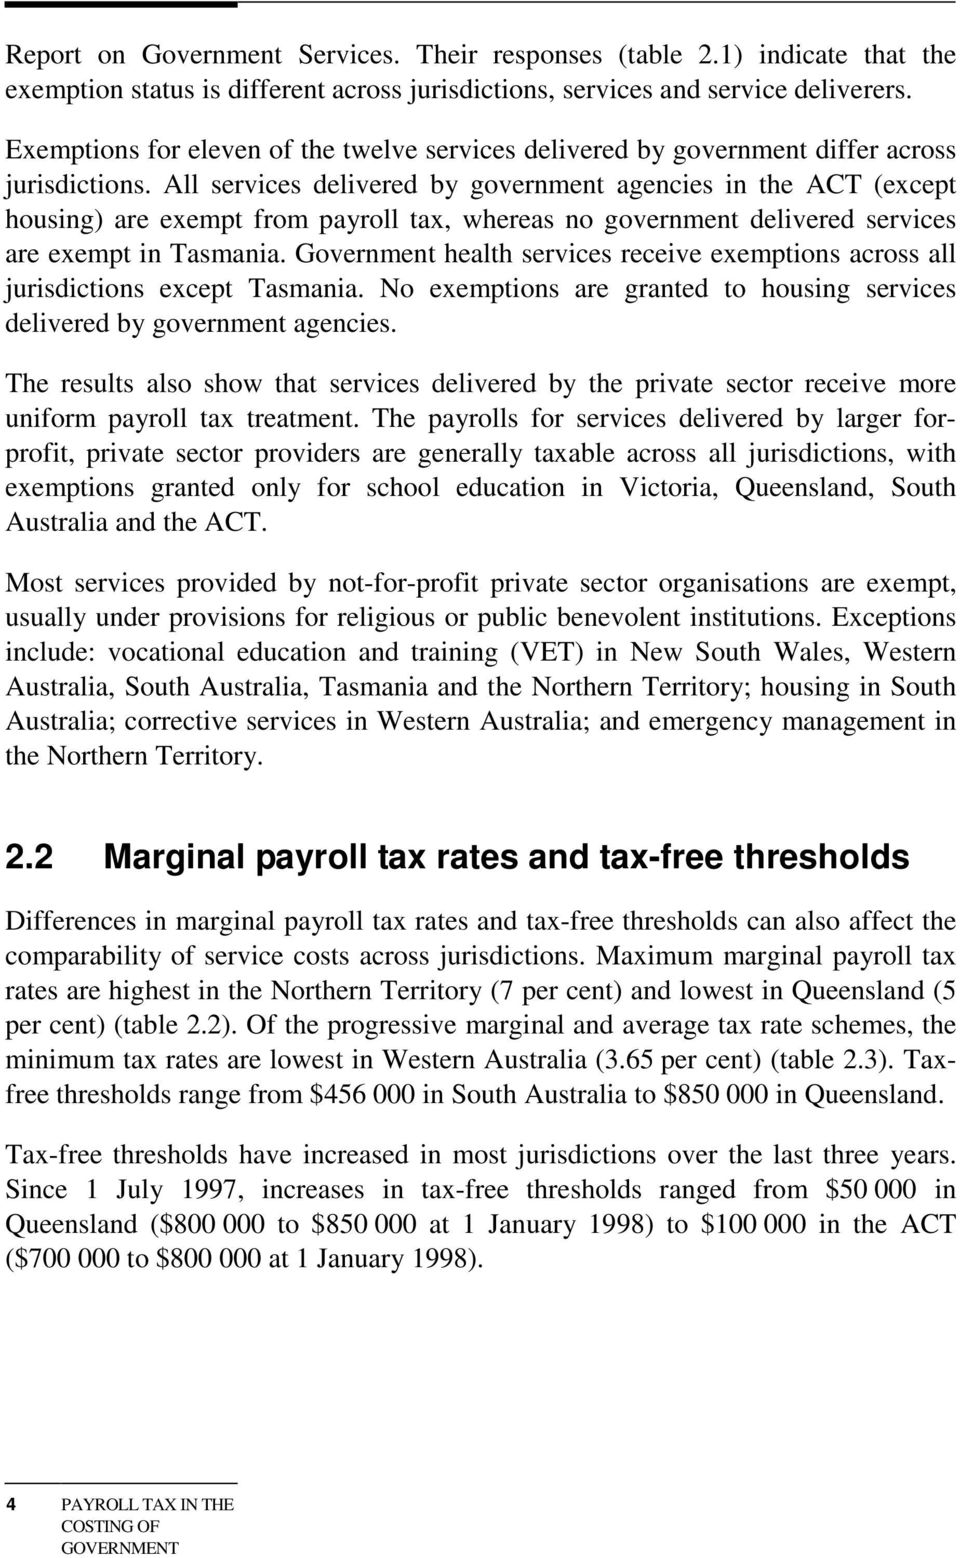 All services delivered by government agencies in the ACT (except housing) are exempt from payroll tax, whereas no government delivered services are exempt in Tasmania.